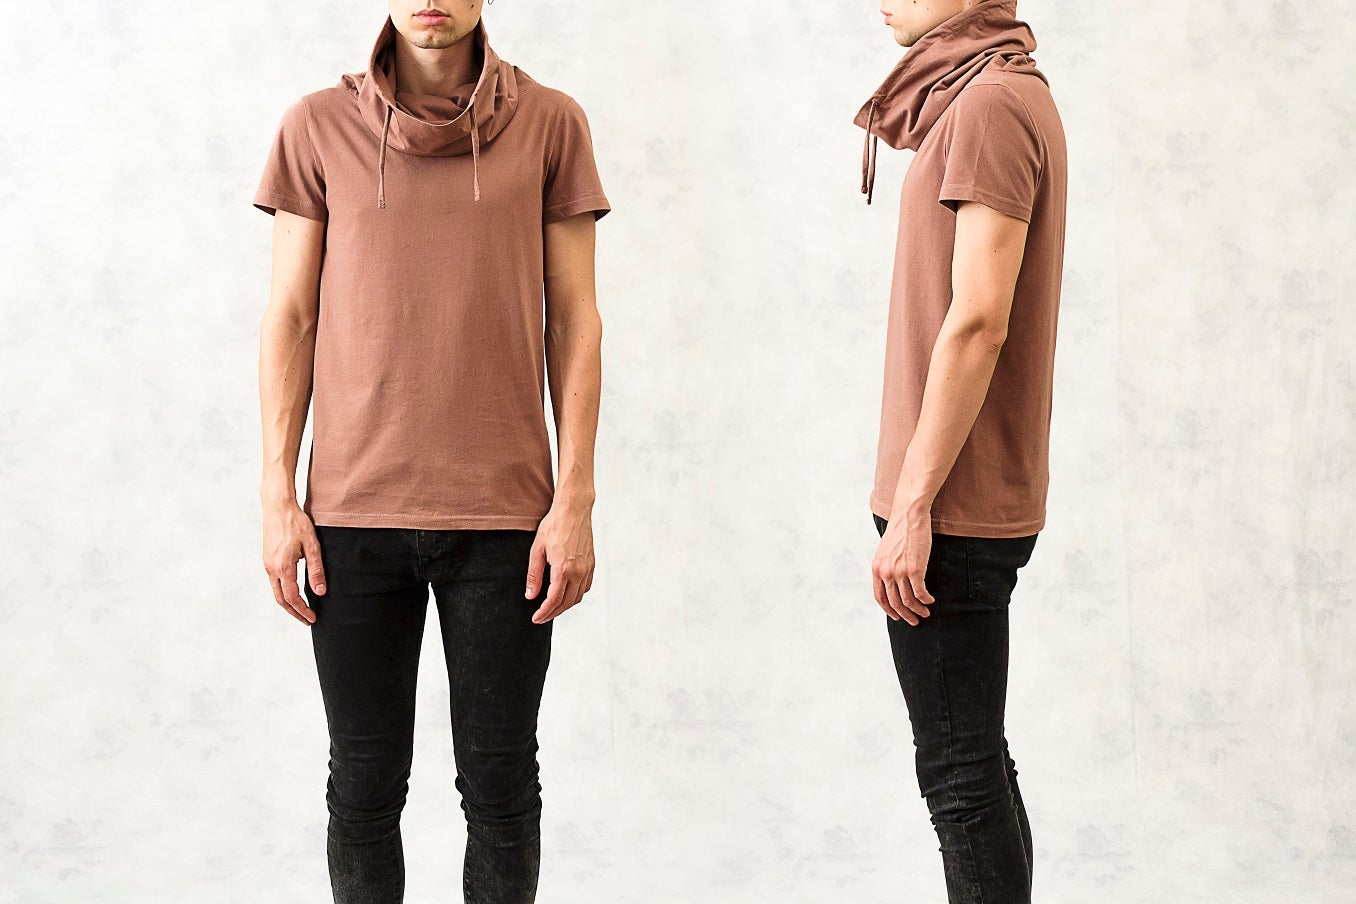 Image of Drawstring Polo-Neck Cotton T-Shirt